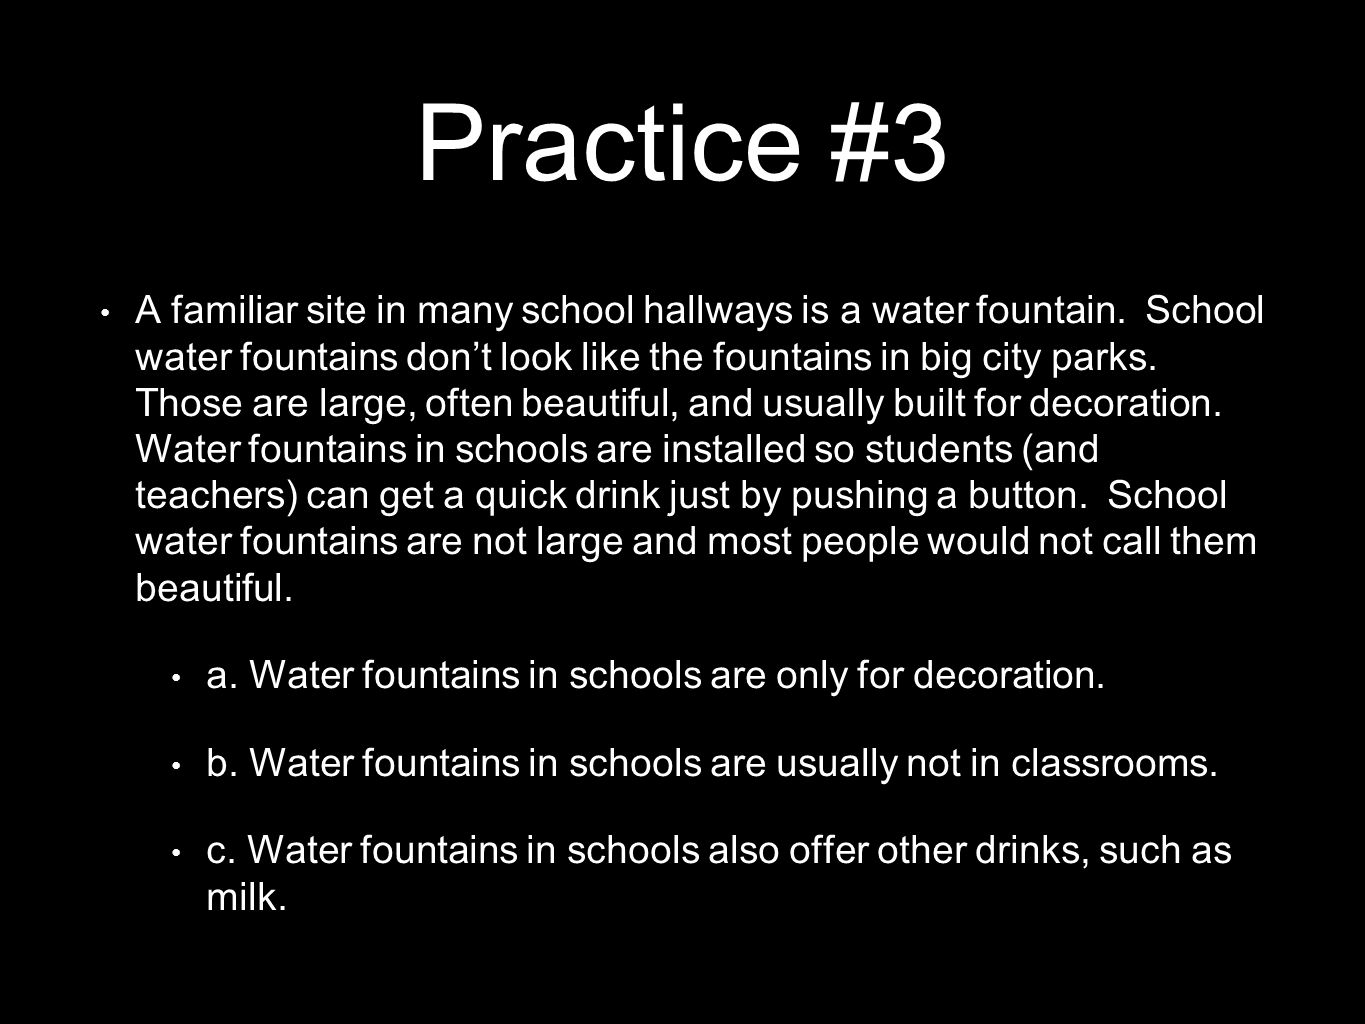 Practice #3 A familiar site in many school hallways is a water fountain. School water fountains don't look like the fountains in big city parks. Those